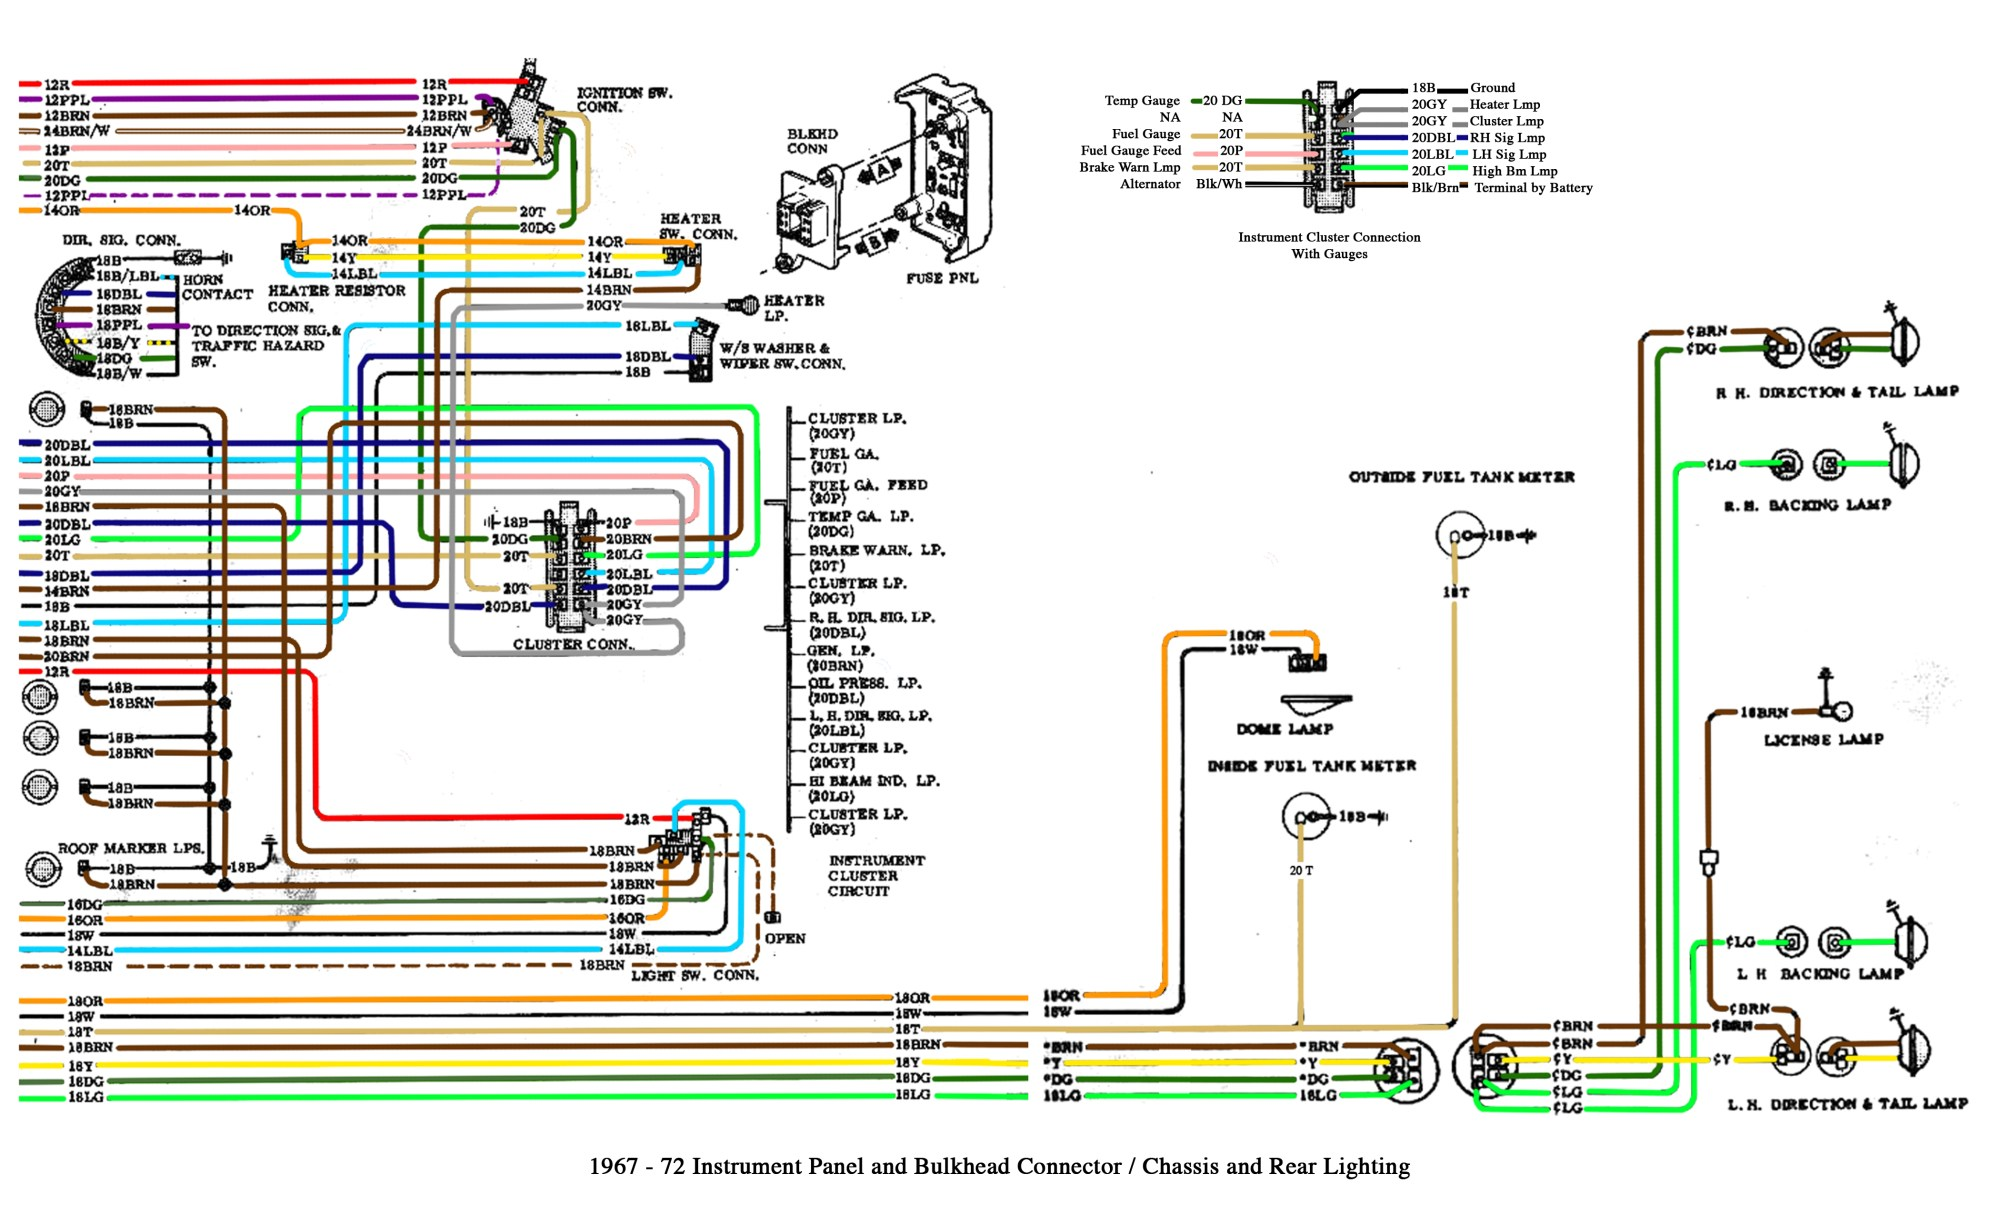 hight resolution of 1970 chevy truck wiring schematic wiring diagram post mix color wiring diagram finished the 1947 present